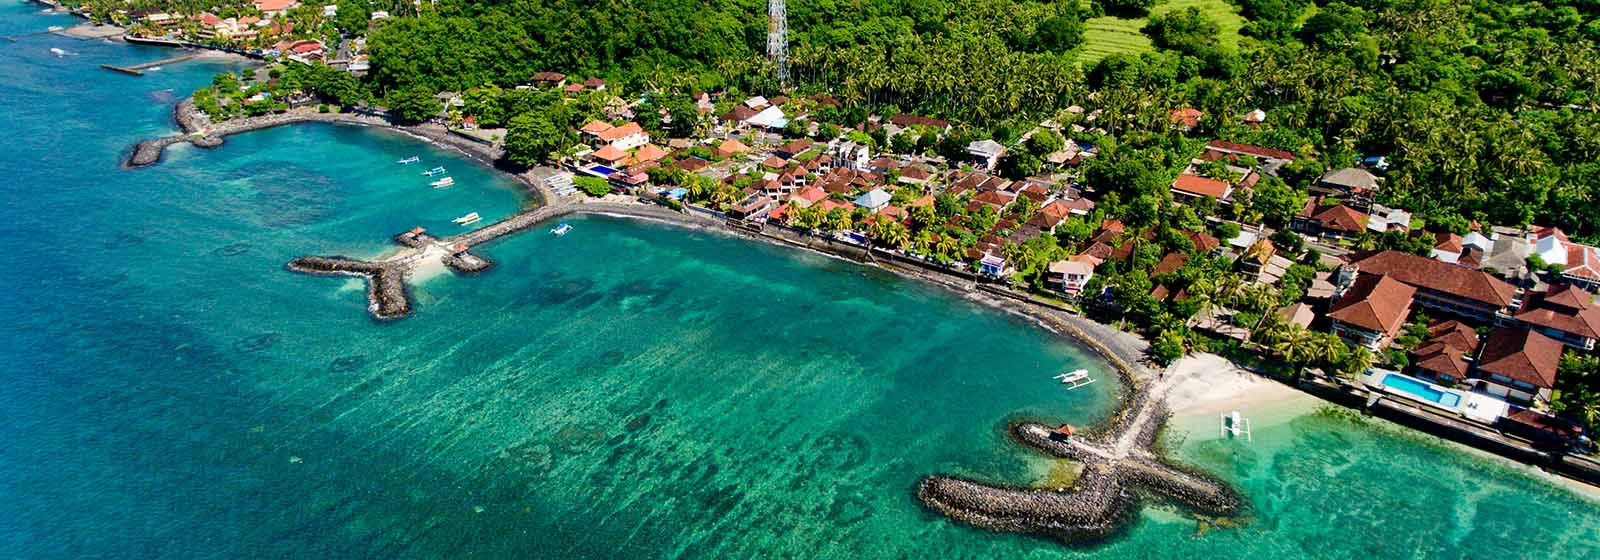 Plan your trip to Indonesia